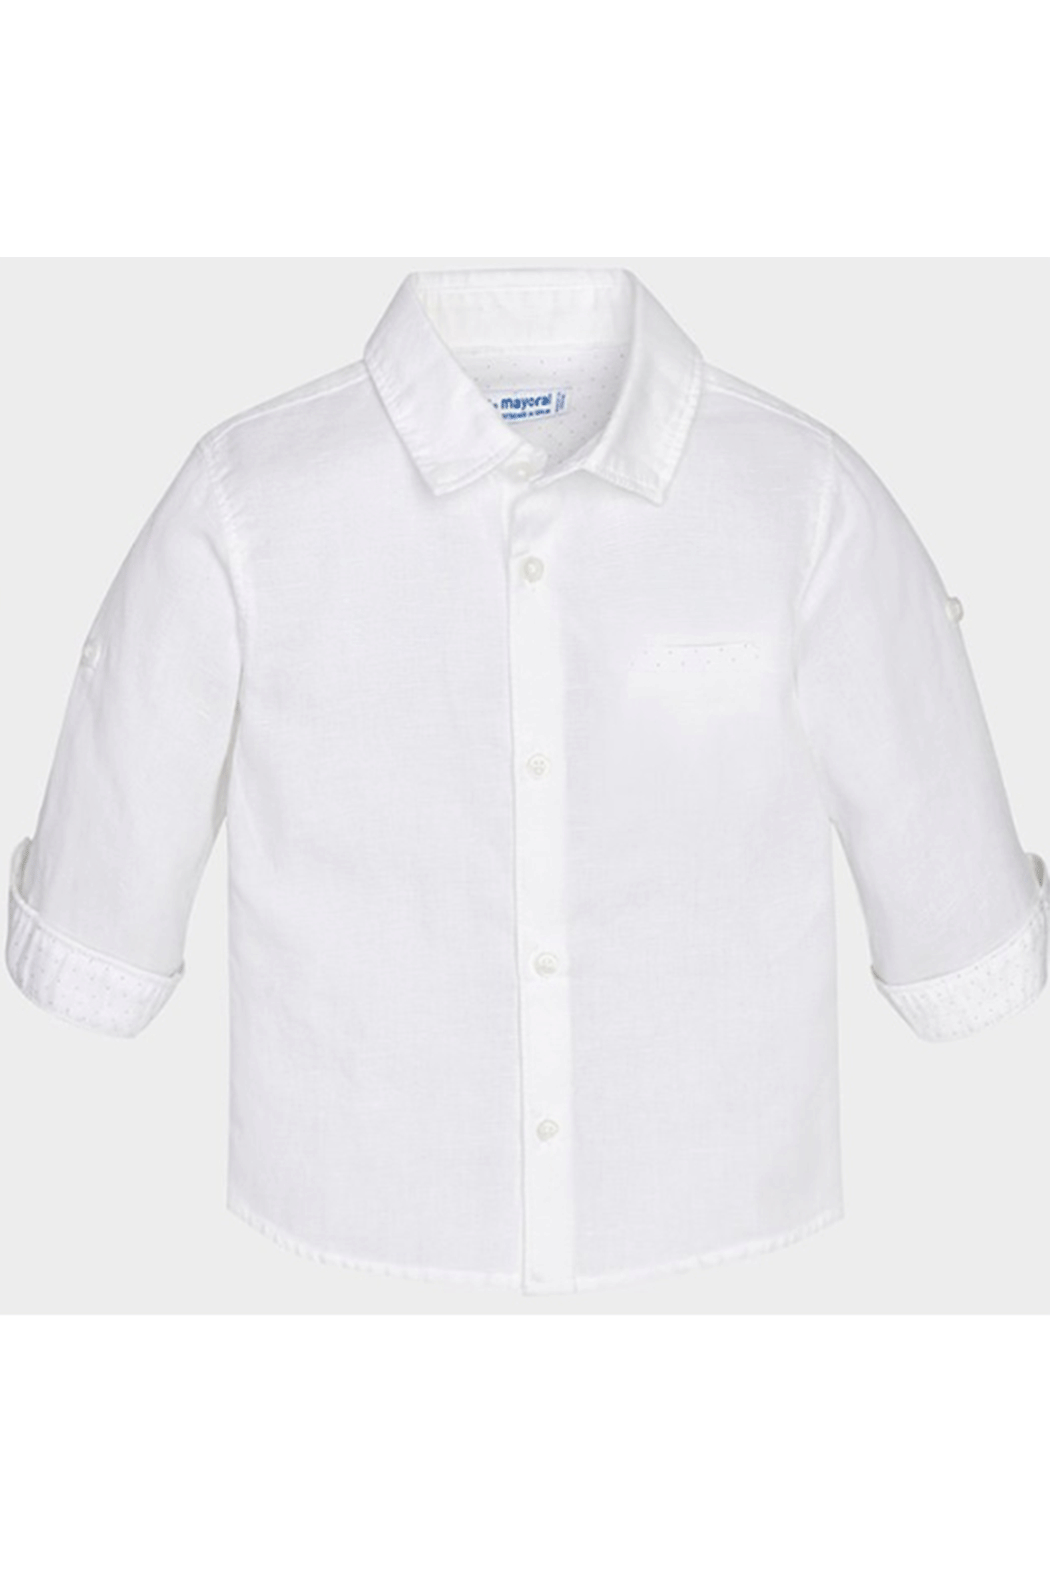 Mayoral White Linen Button Up - Front Cropped Image